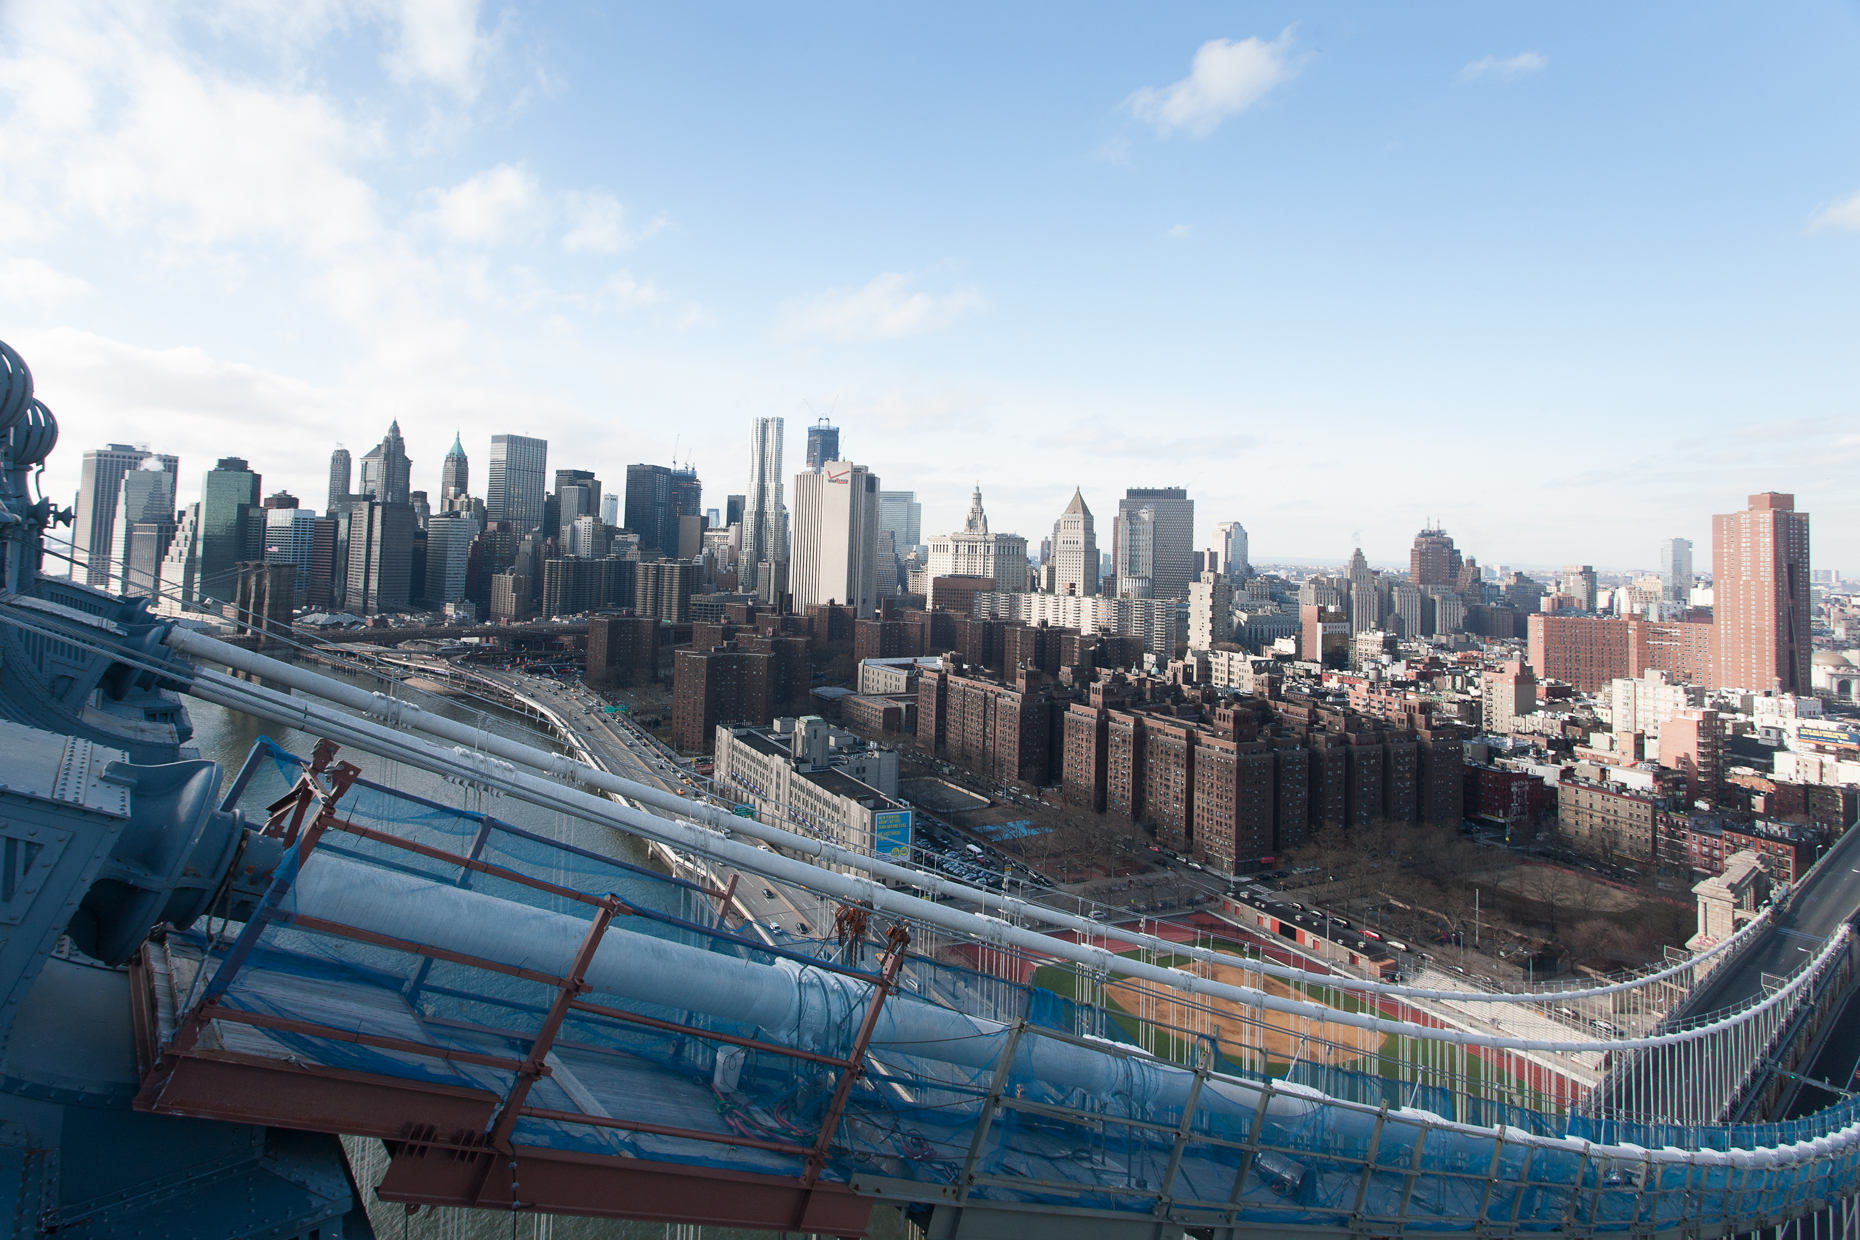 120119DOT_MANHATTAN_BRIDGE_131-DUP.jpg